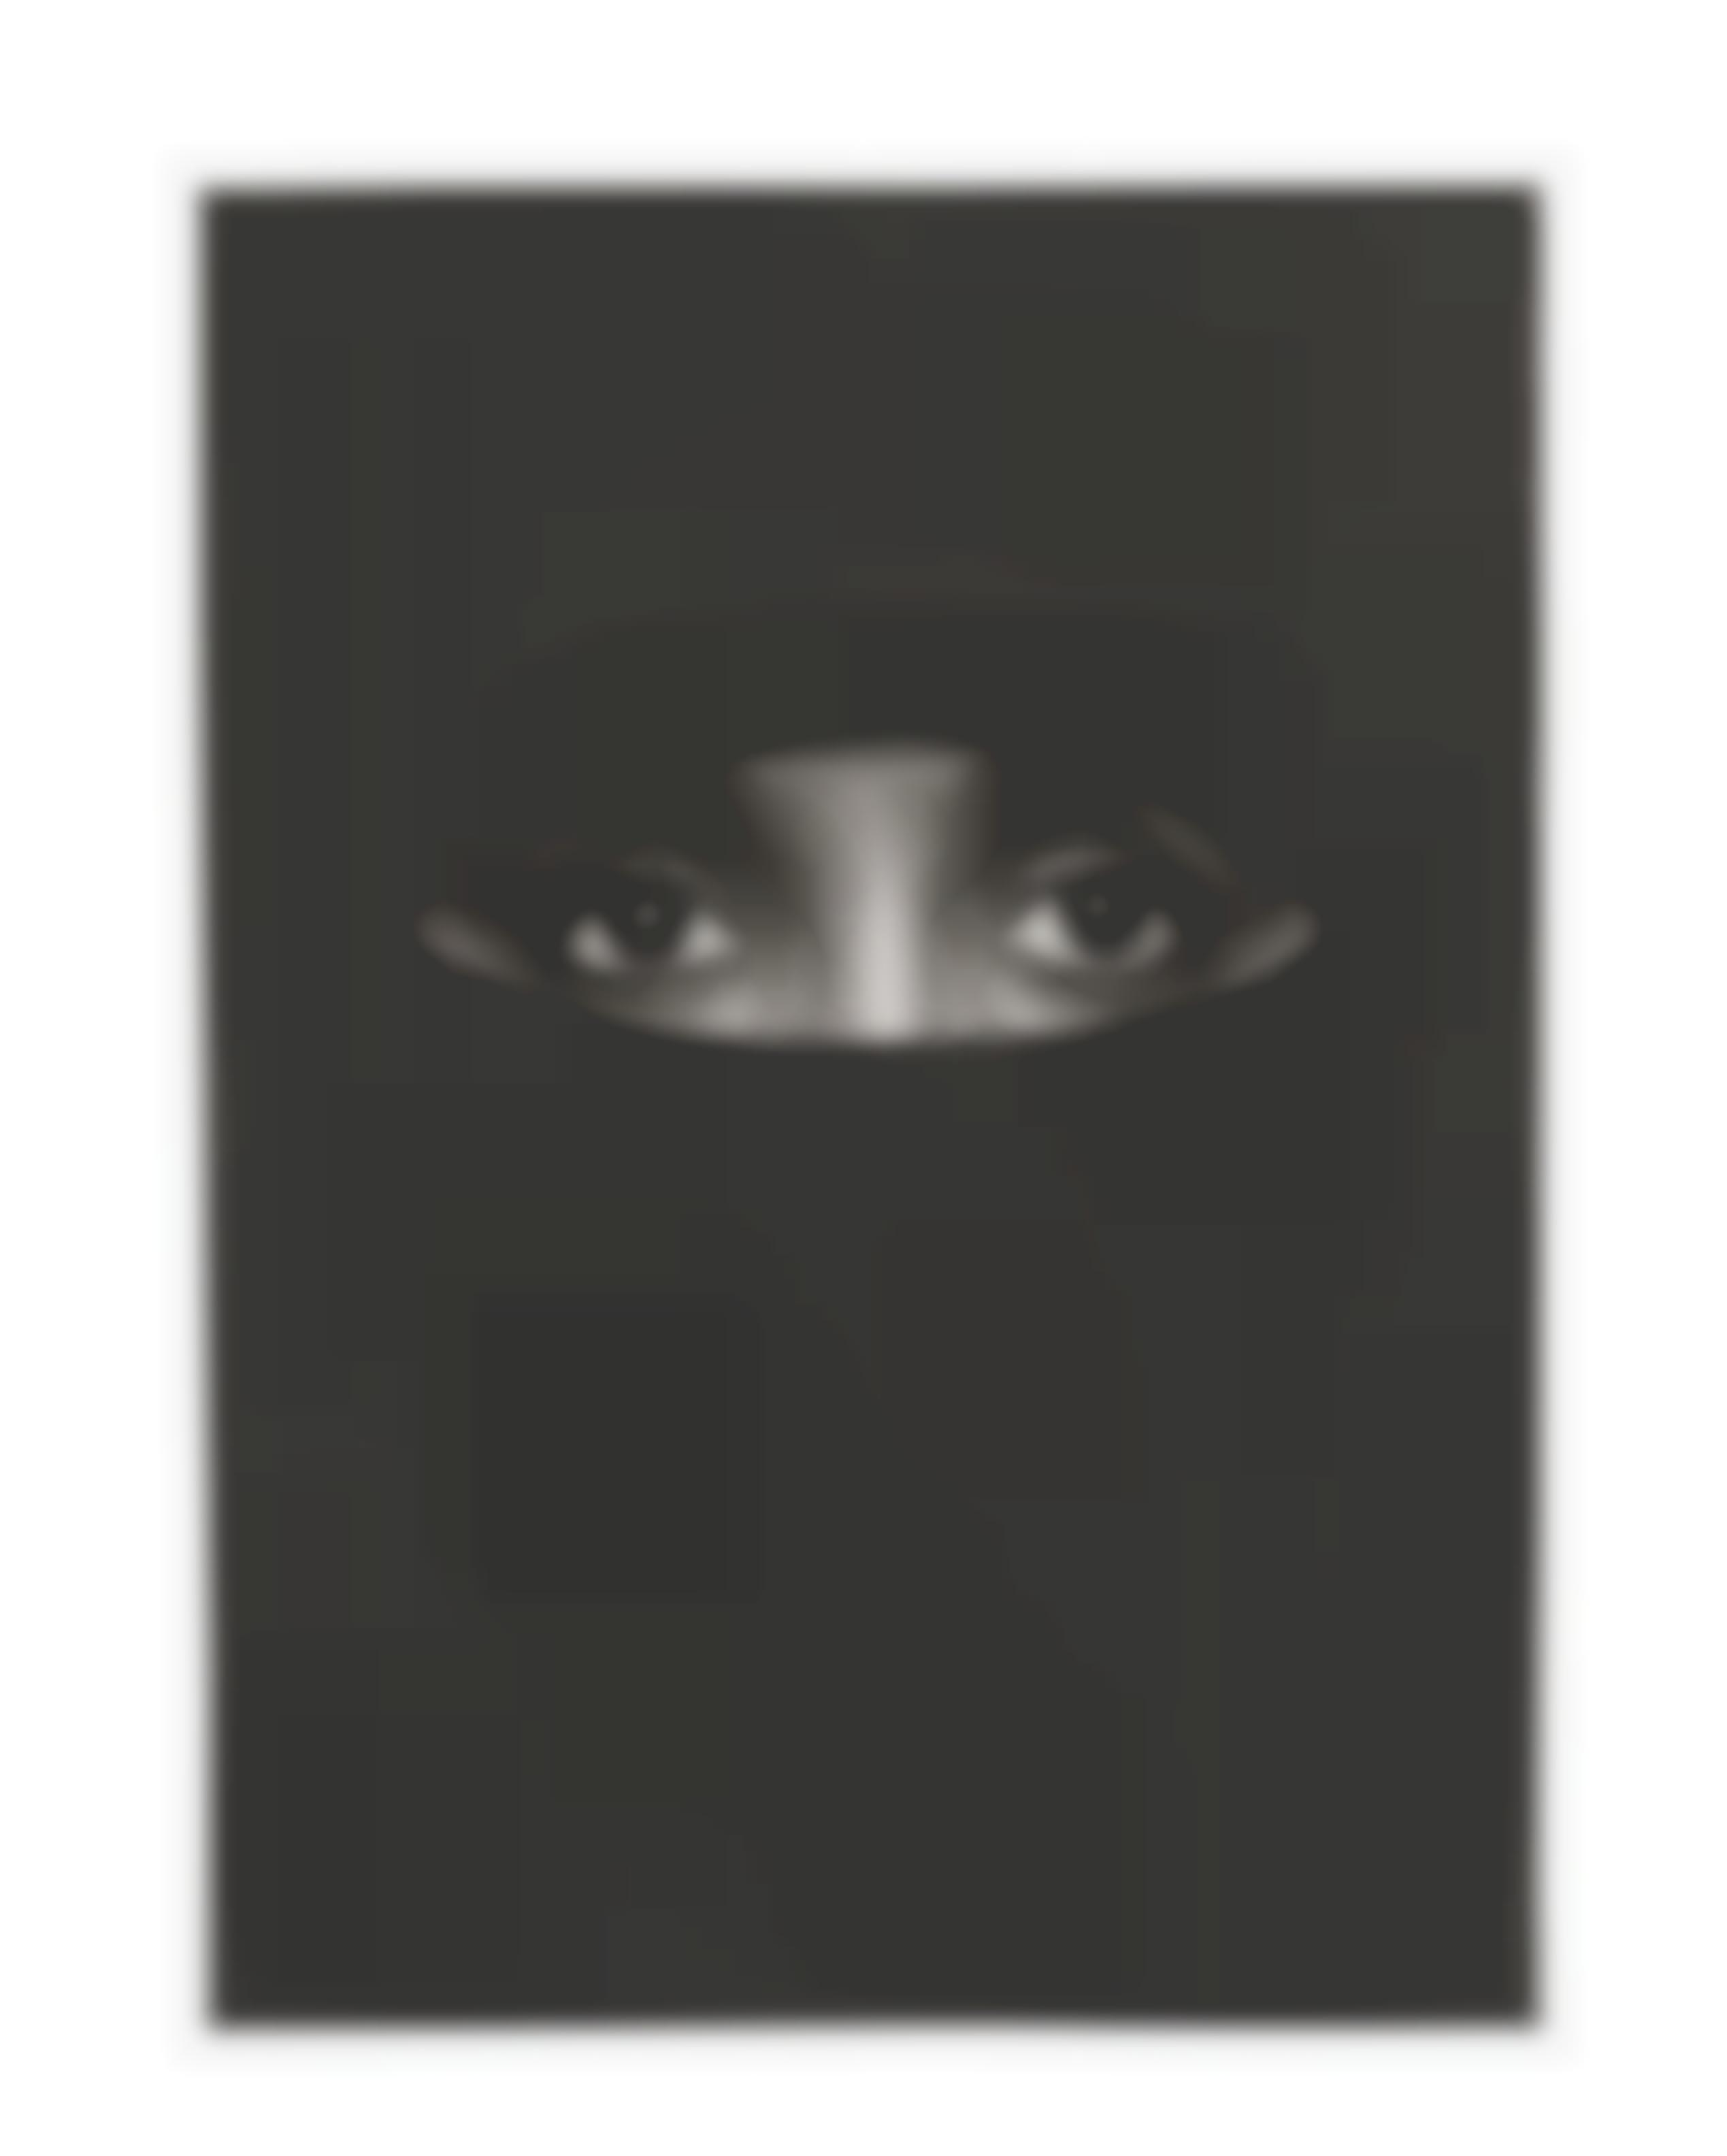 Robert Longo-Study For Burka No. 7 (Hanane)-2010